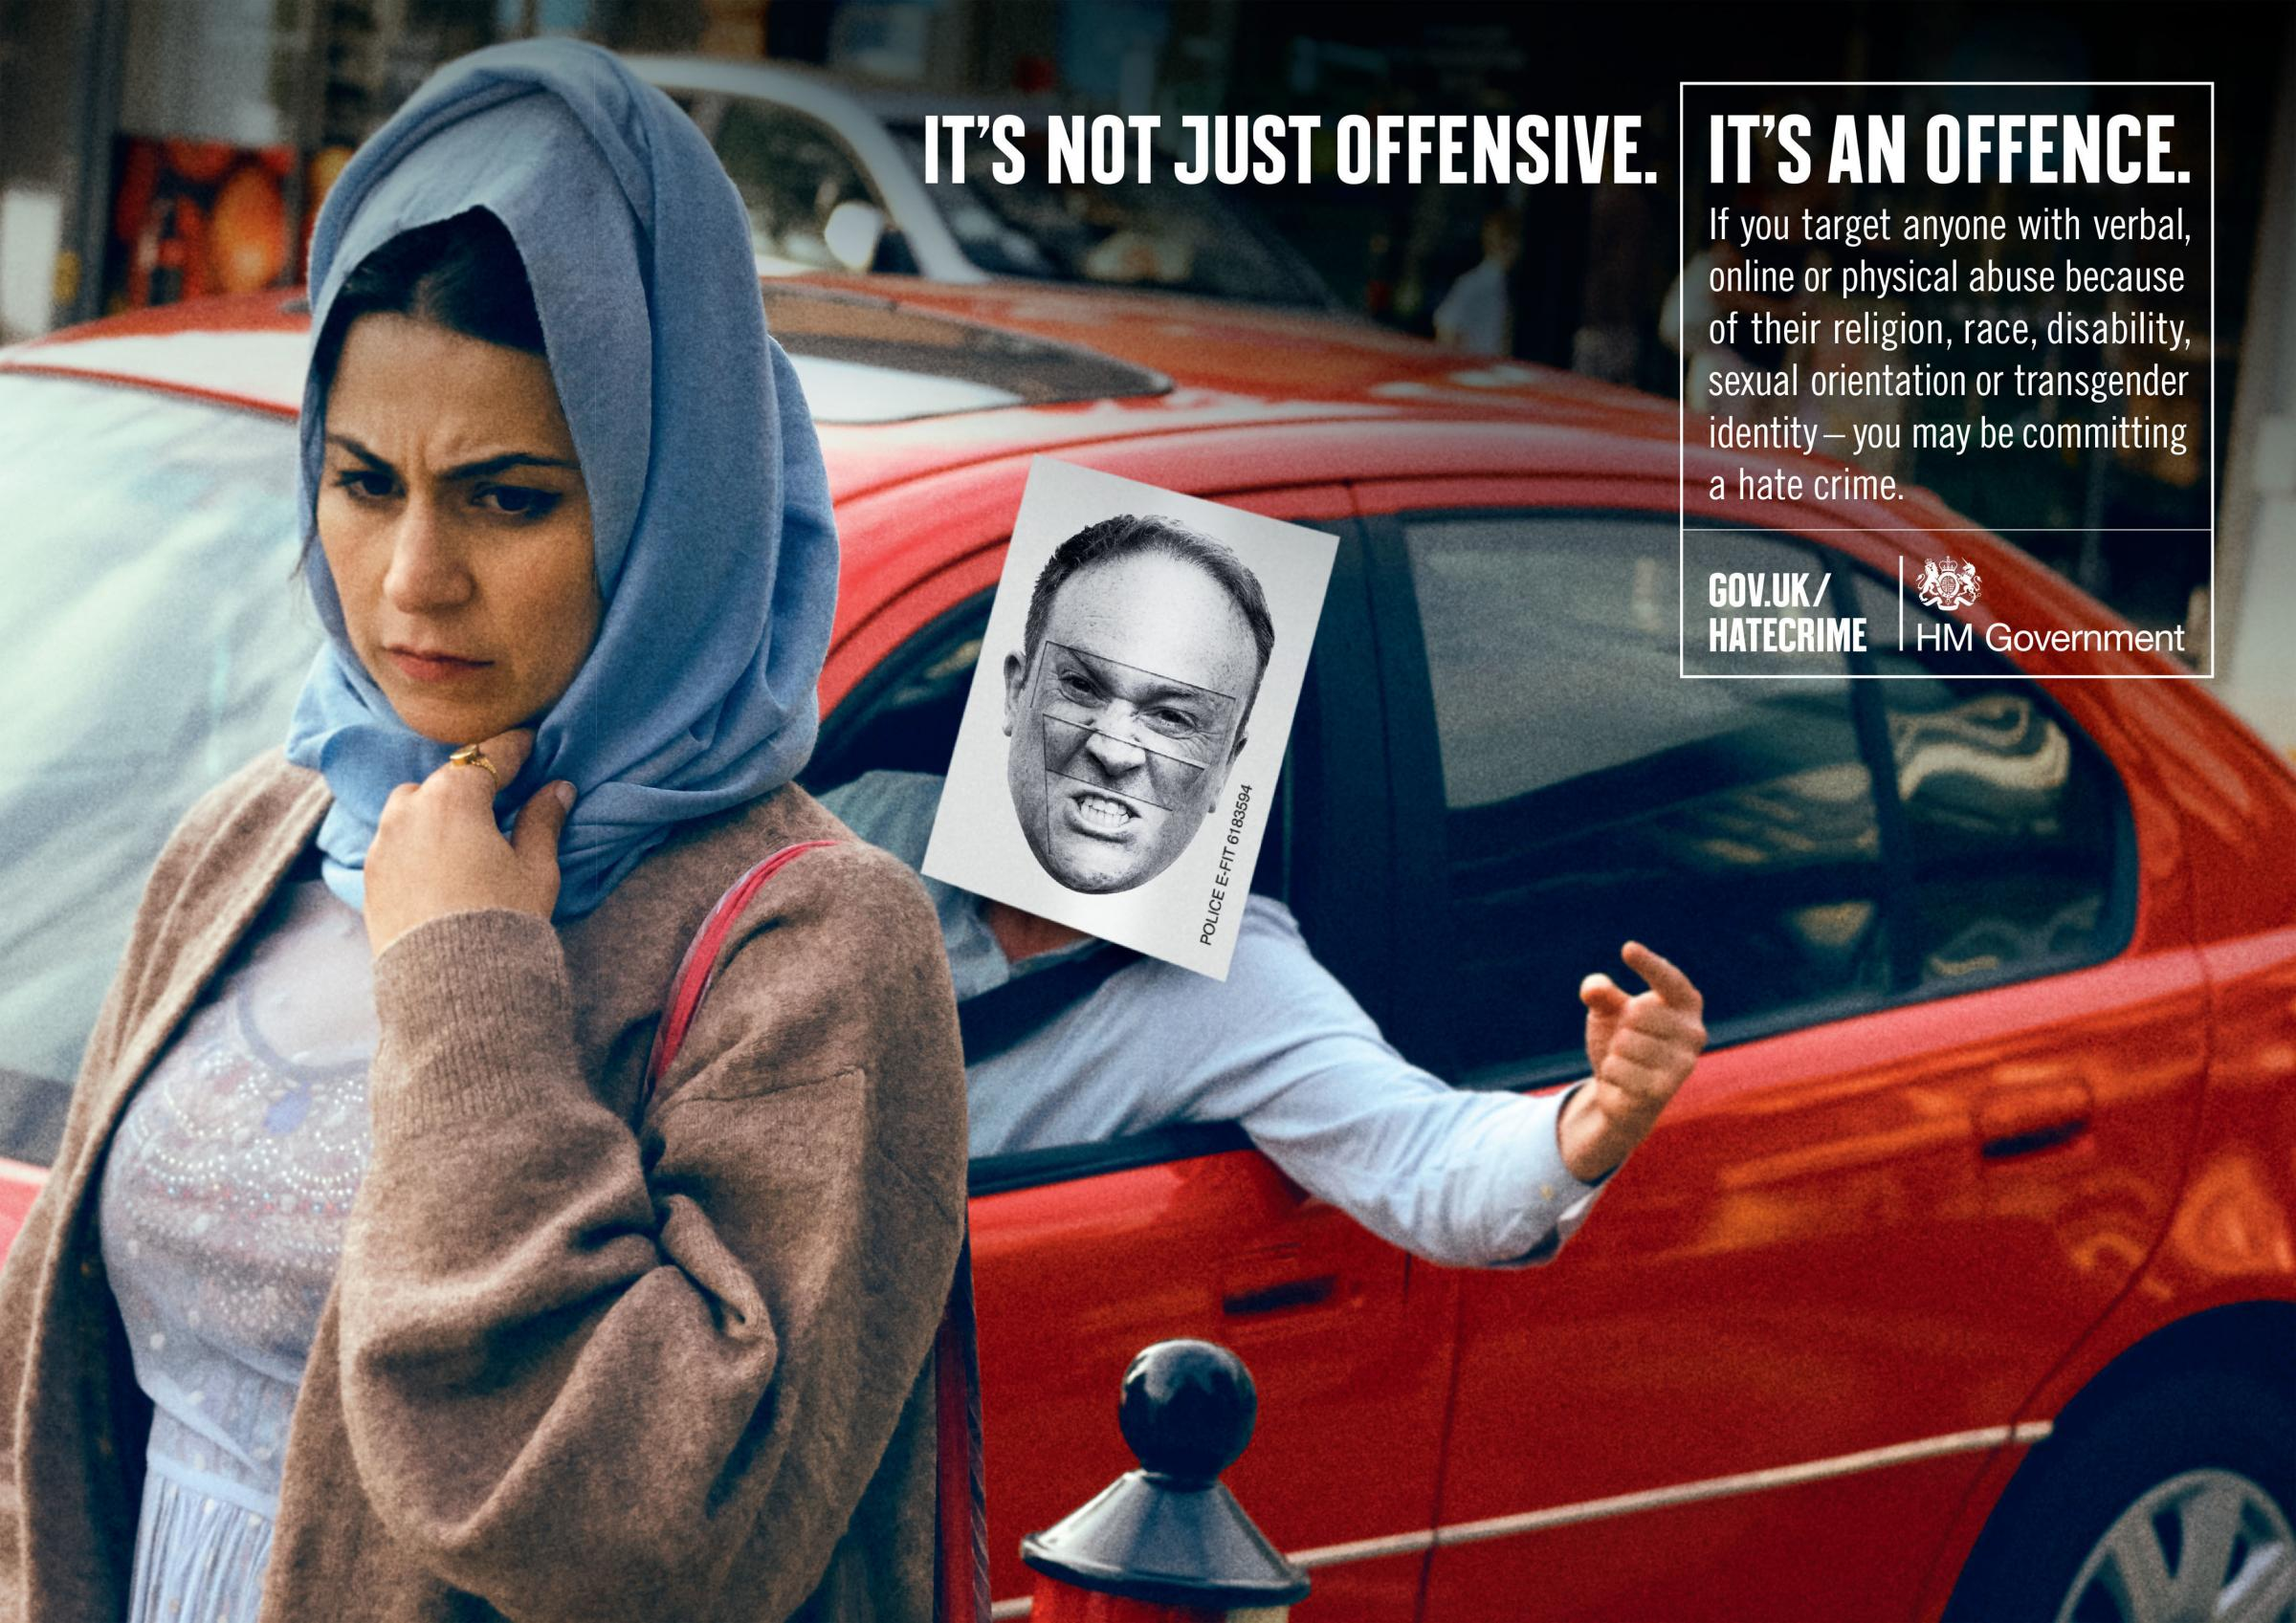 New national campaign aims to increase awareness about hate crime